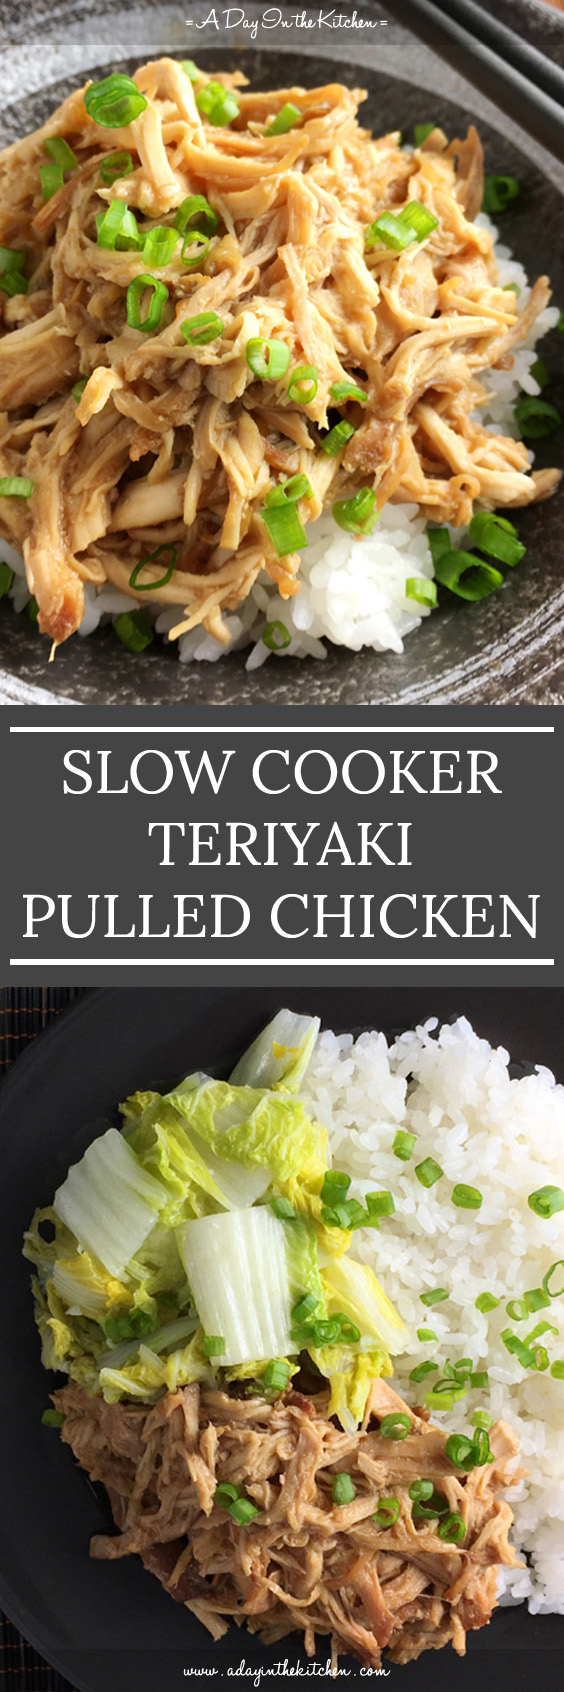 This tasty Slow Cooker Teriyaki Pulled Chicken is perfect for that weeknight meal when you're short on time to prepare dinner. Let the slow cooker do the cooking for you! #slowcooker #teriyakichicken #chicken #slowcookerchicken